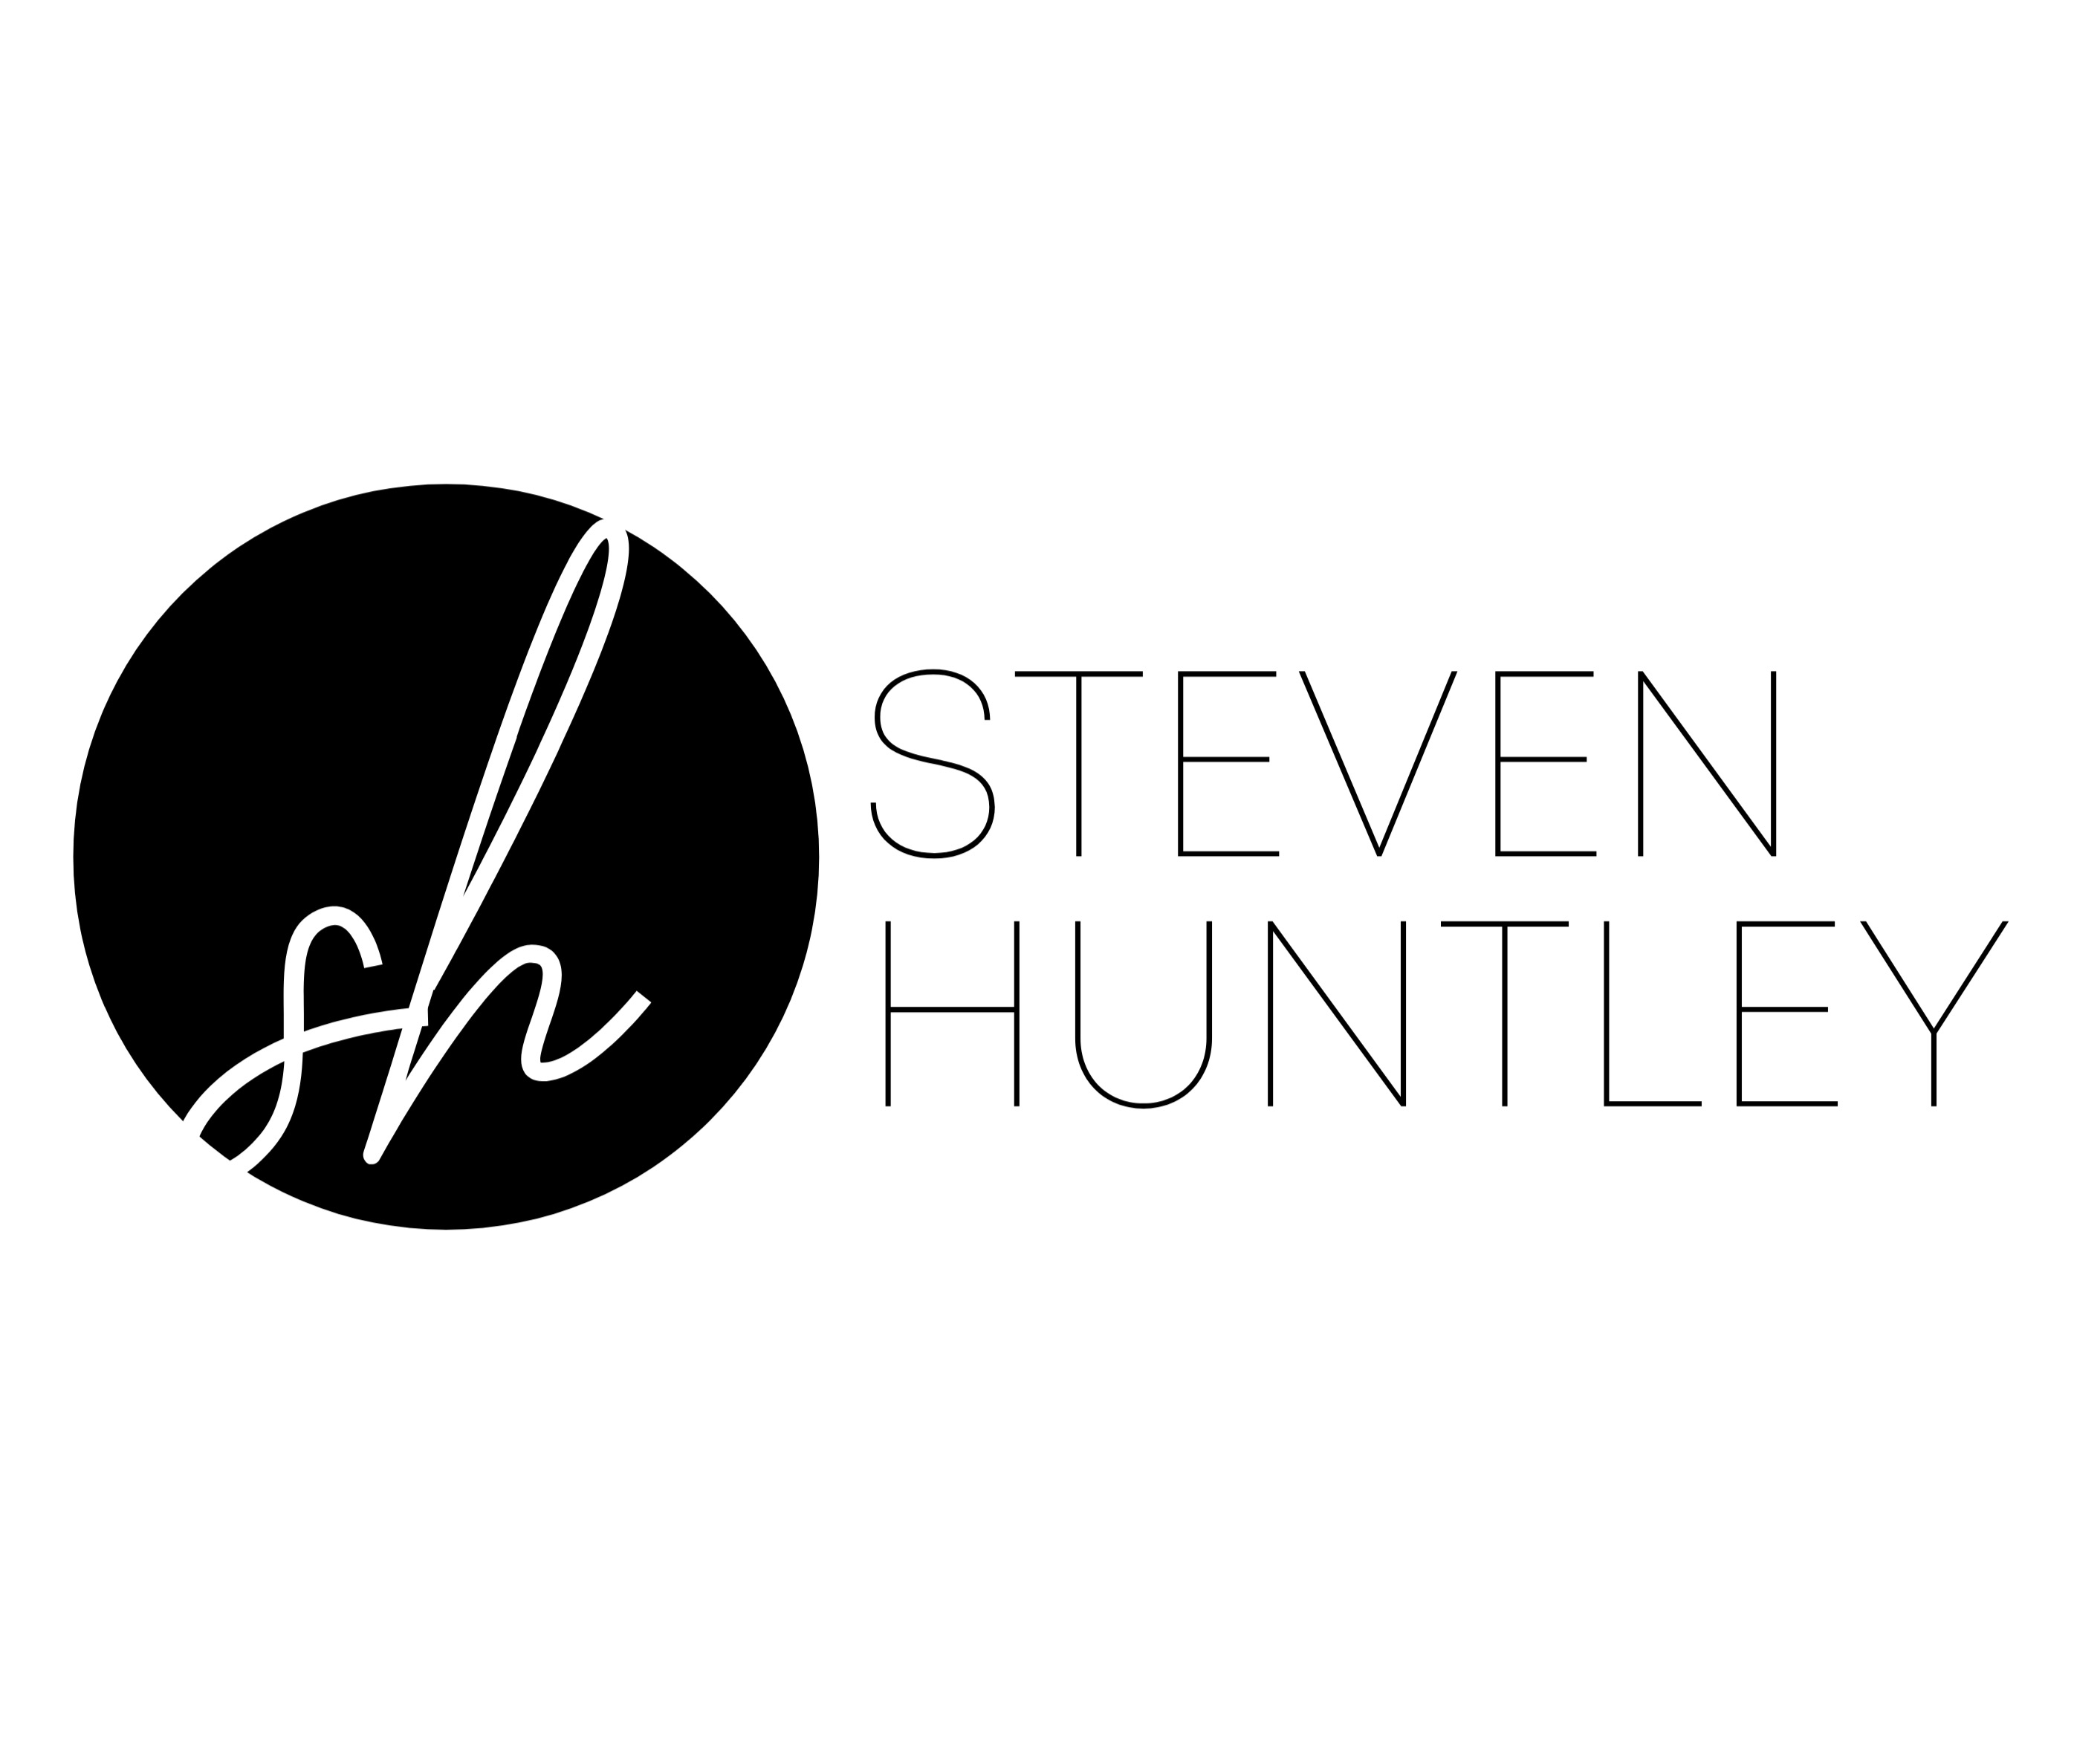 Steven%20huntley%20logo_edited